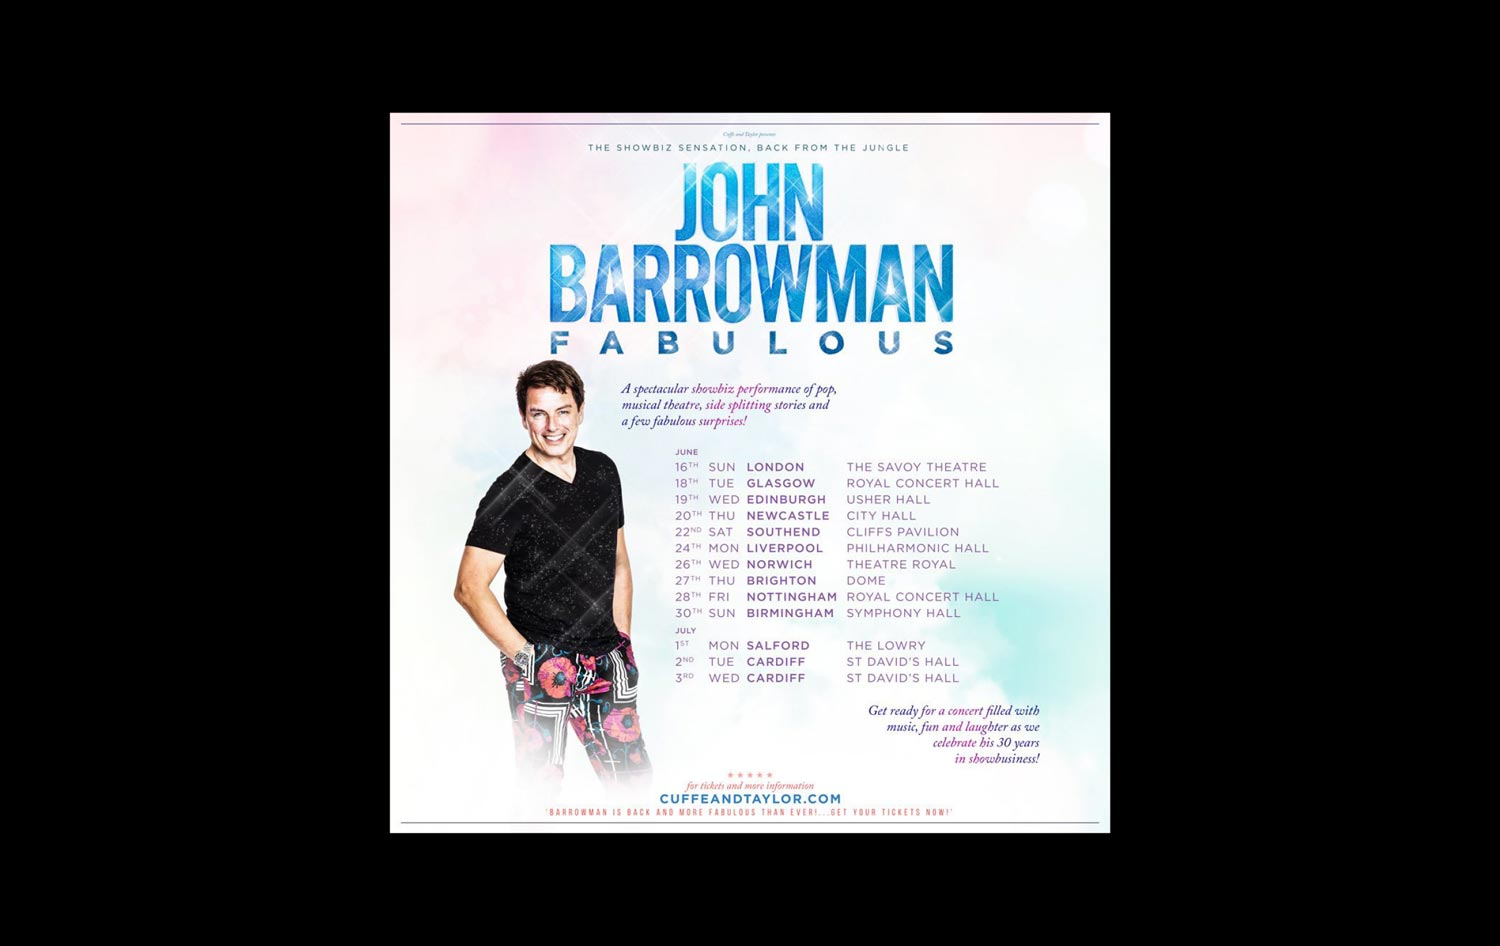 John Barrowman - Fabulous